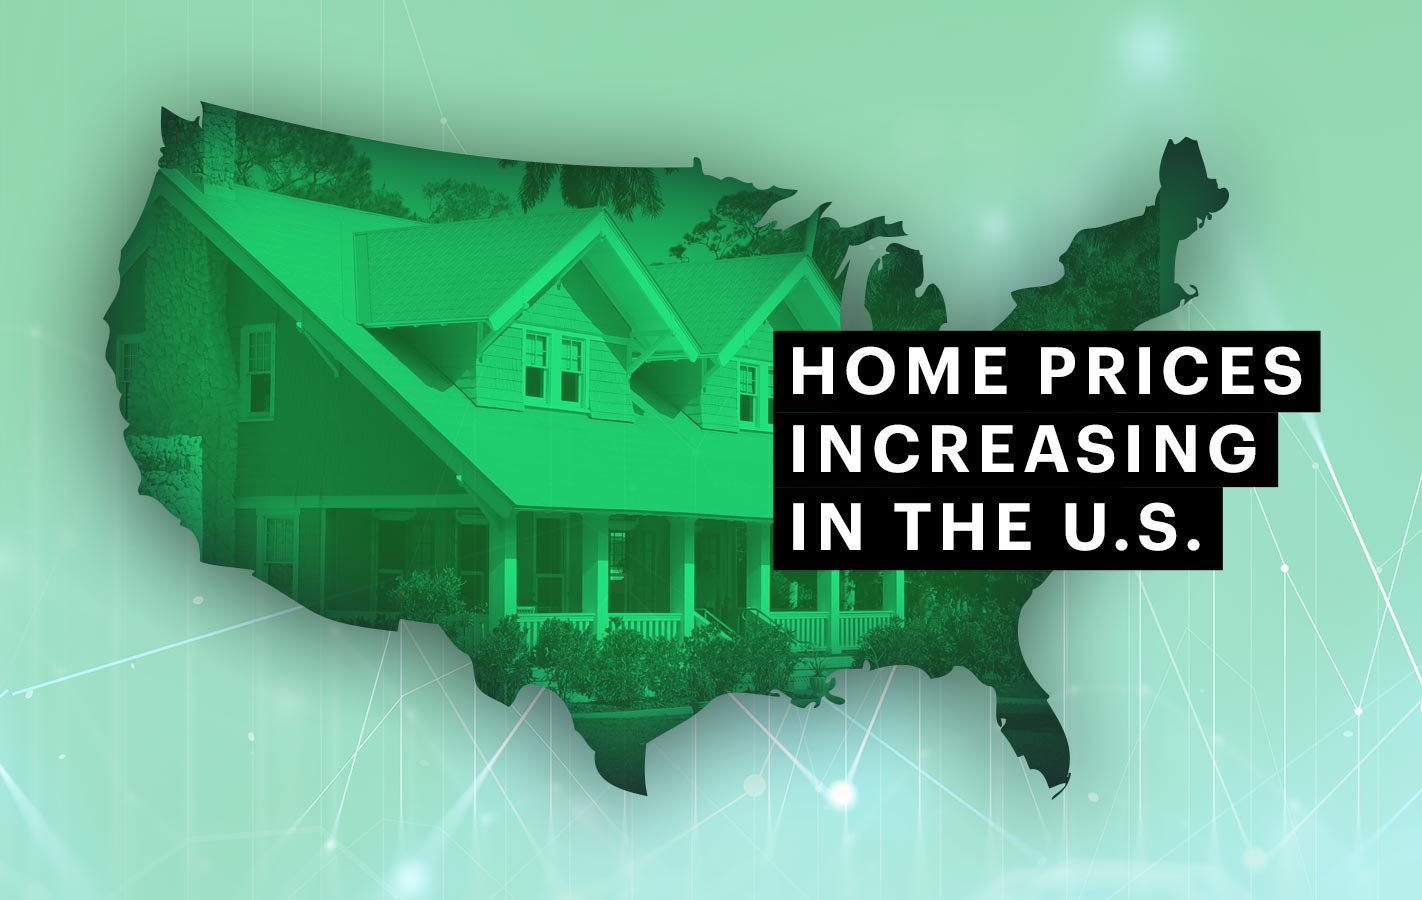 Home Prices Increasing in the U.S.